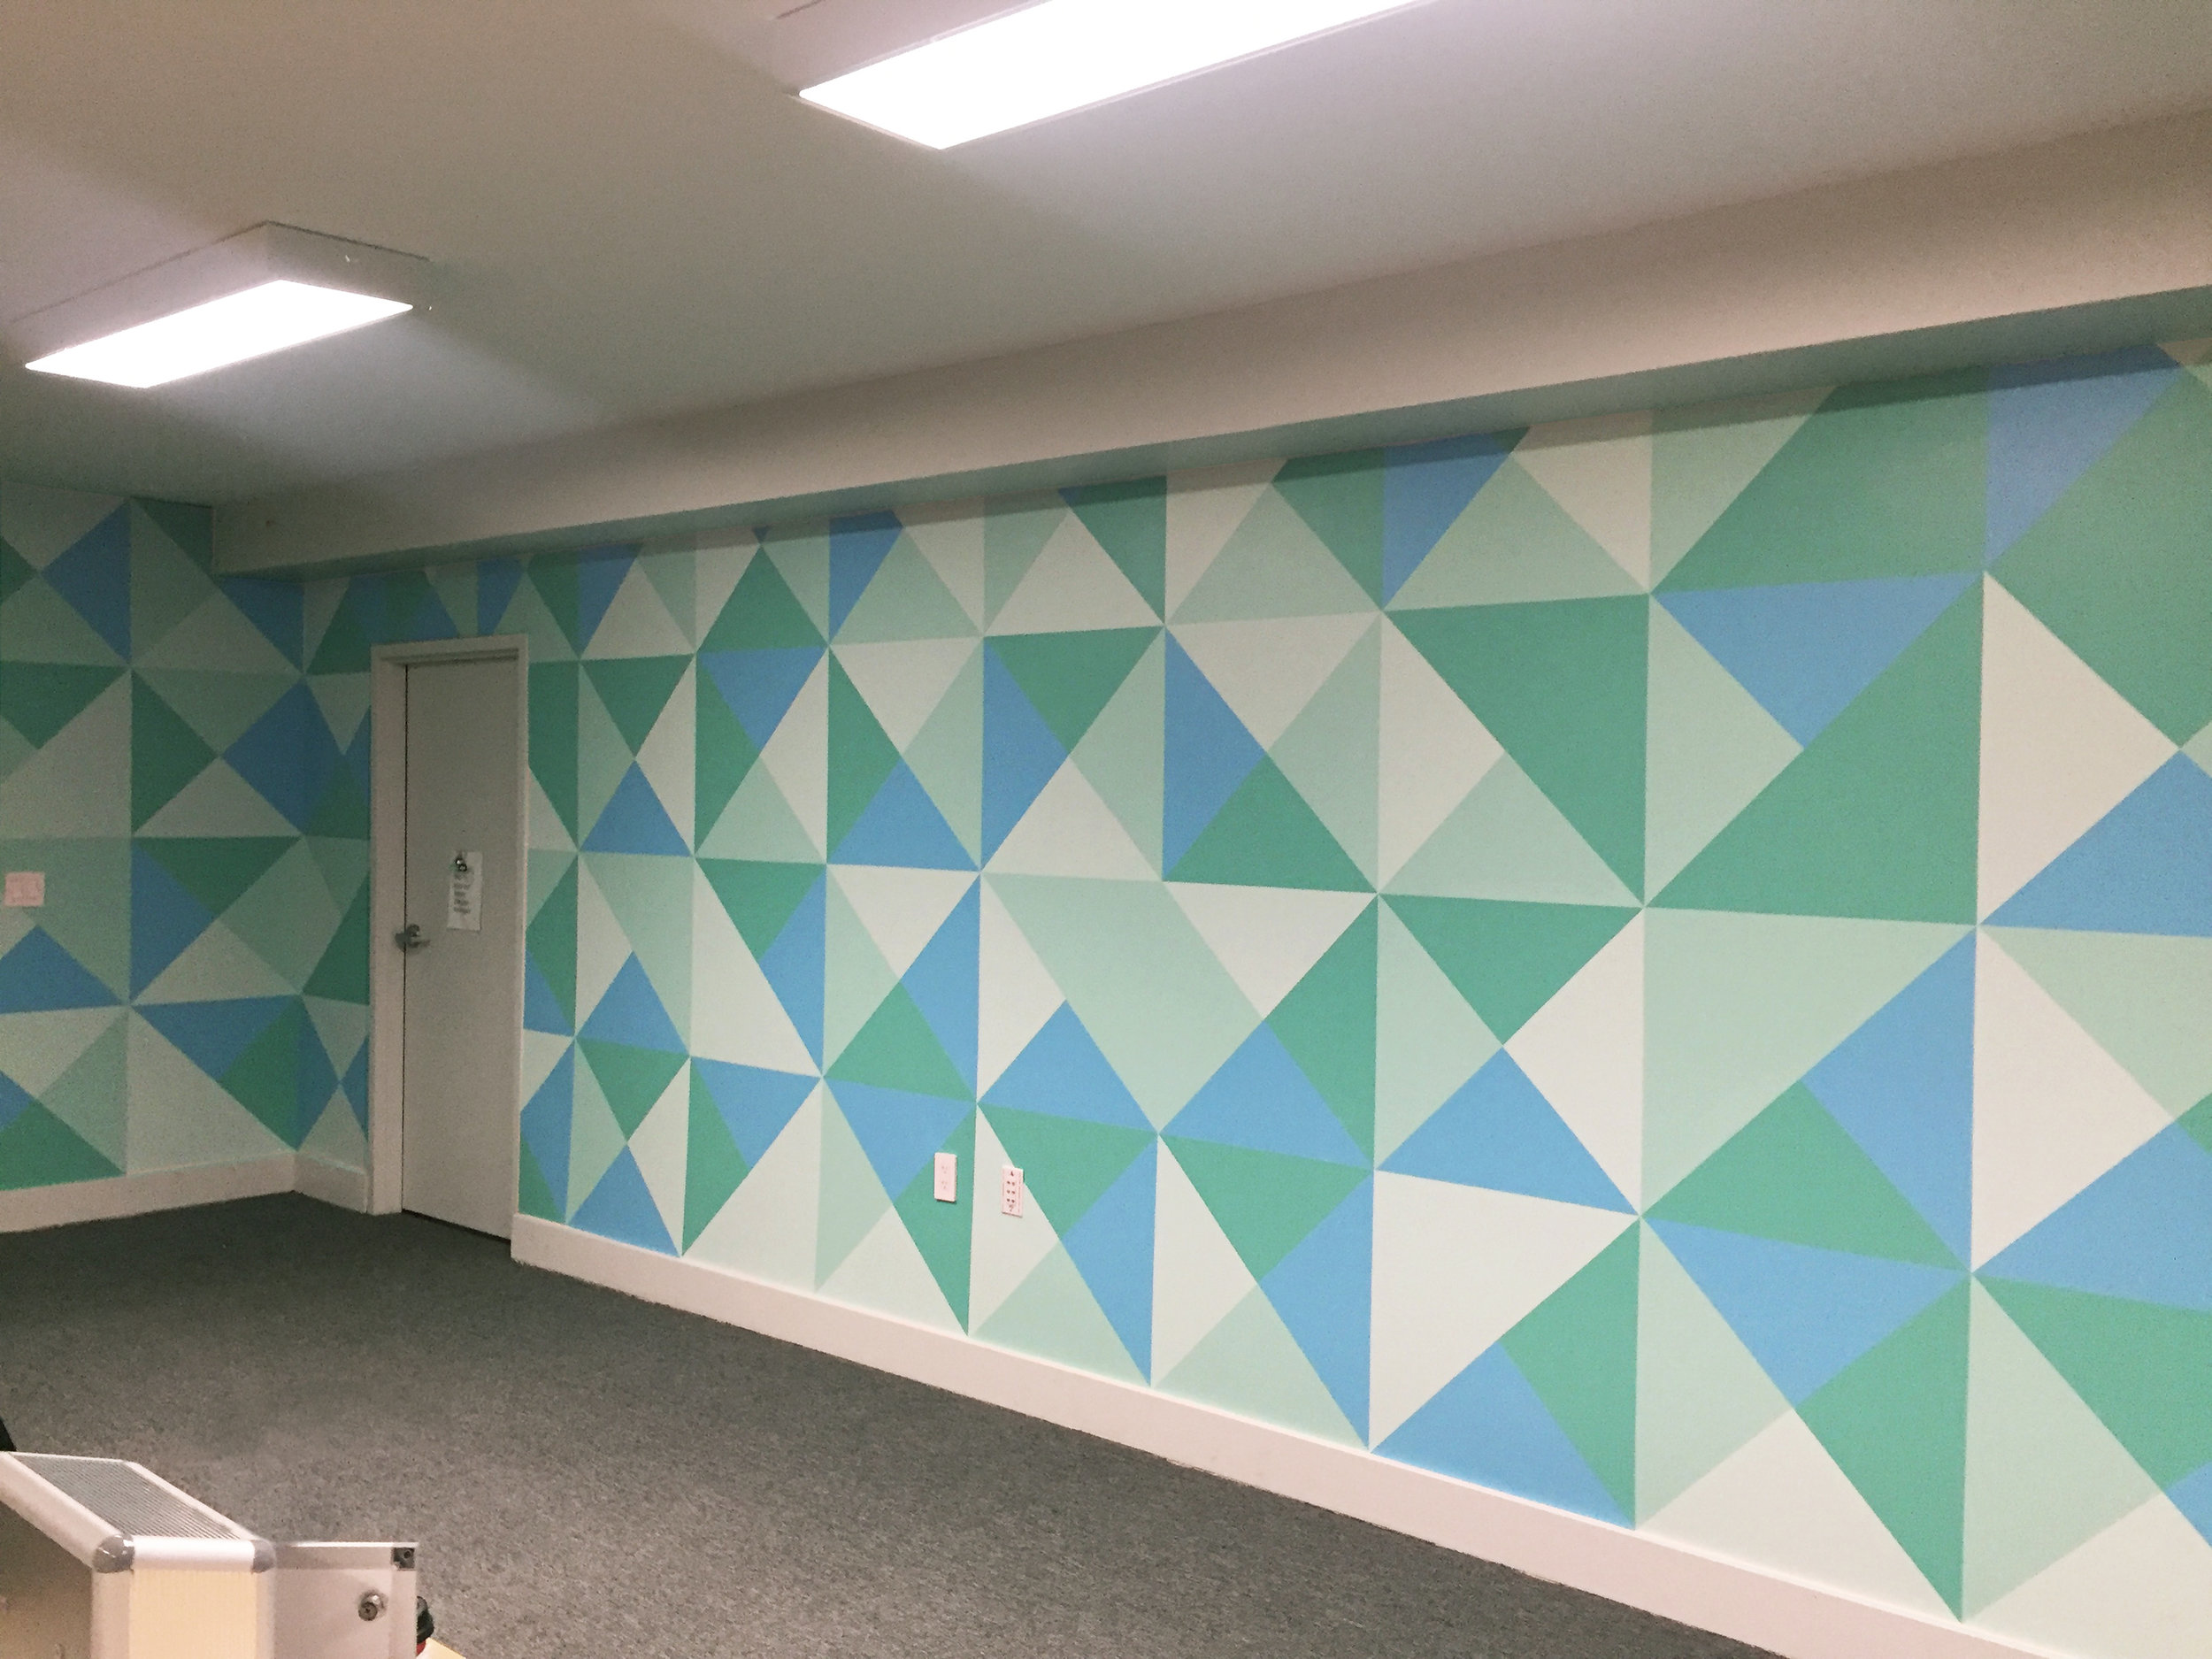 Office-commercial-mural-san-francisco-eden-wall-and-wall-mural-company_006.jpeg